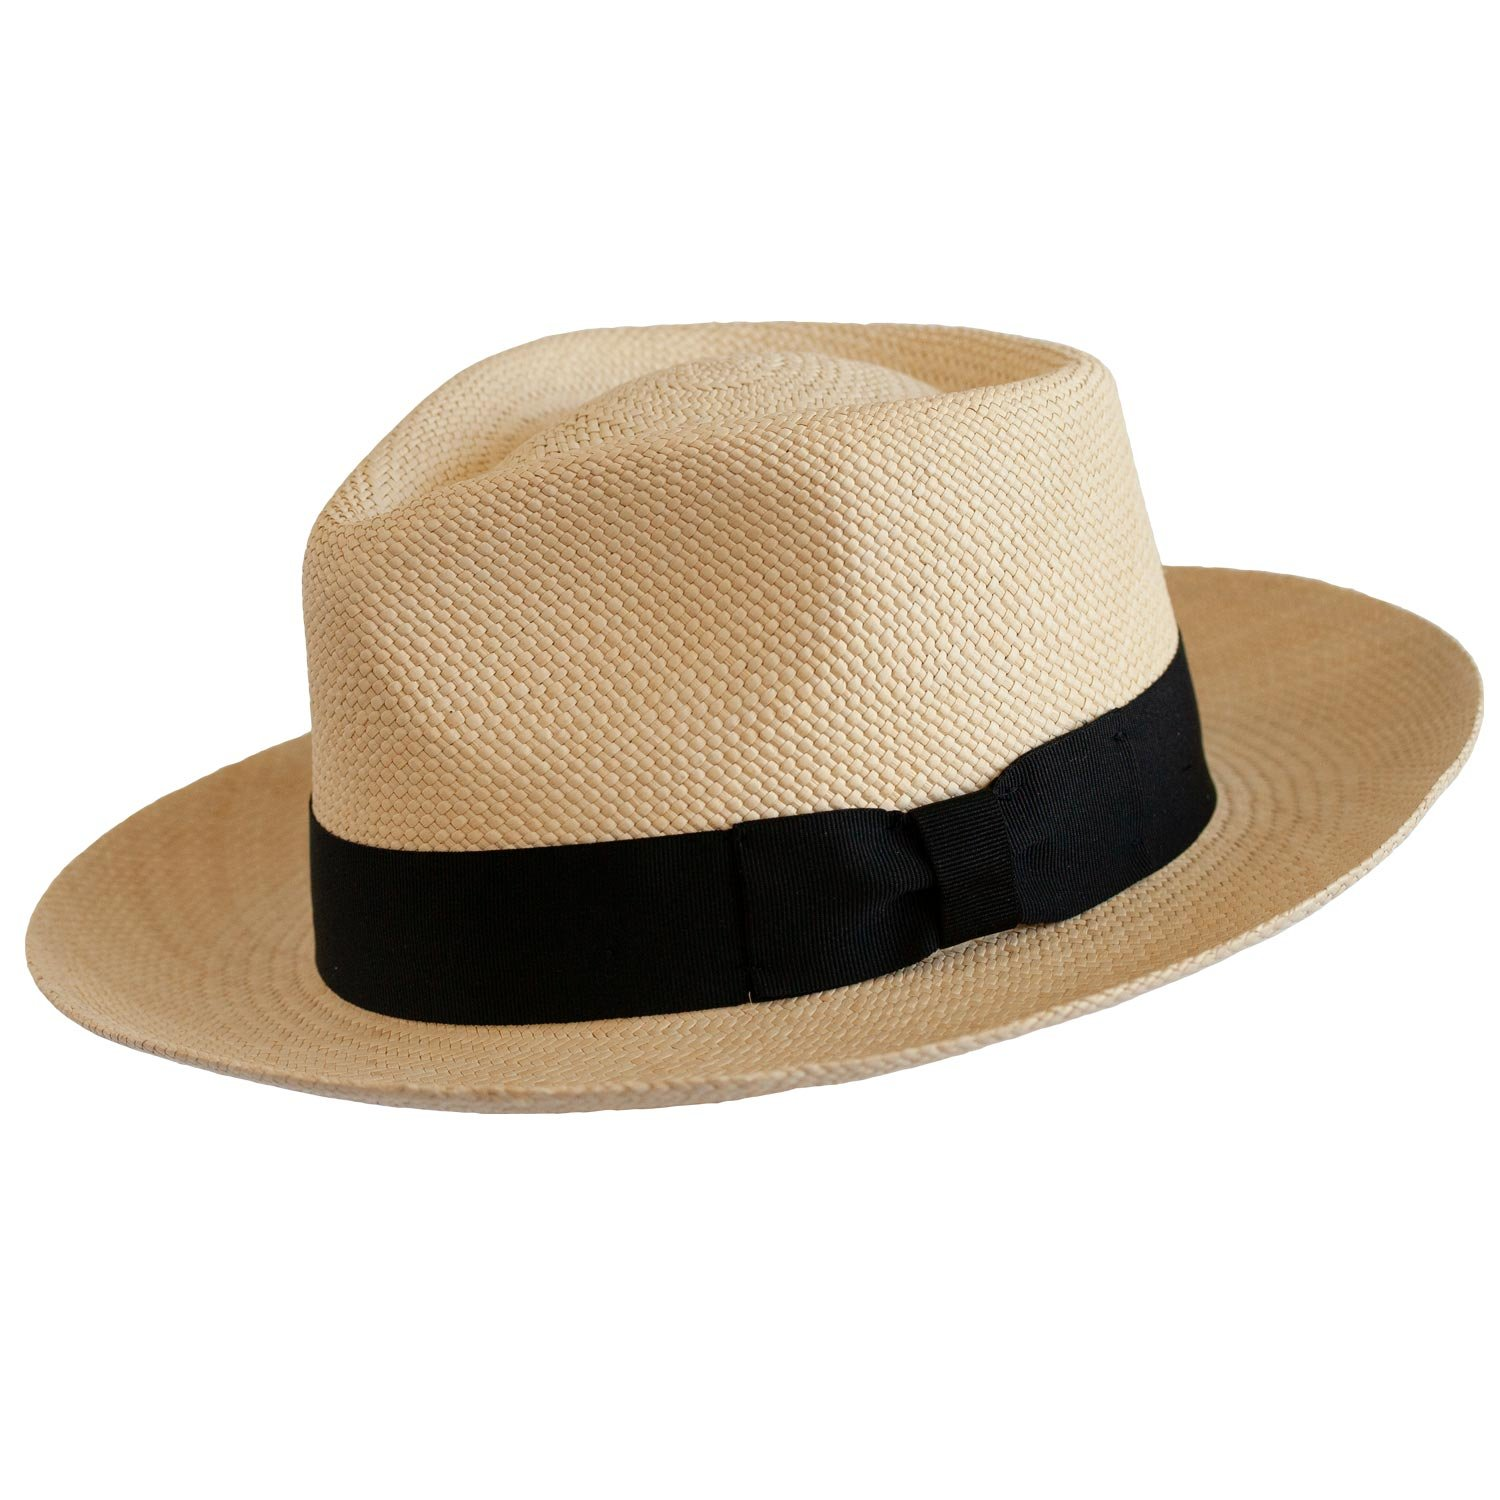 Levine Hat Co. Genuine Panama Bogart Fedora Straw Dress Hat (Large (fits 7 1/4 to 7 3/8), Natural)